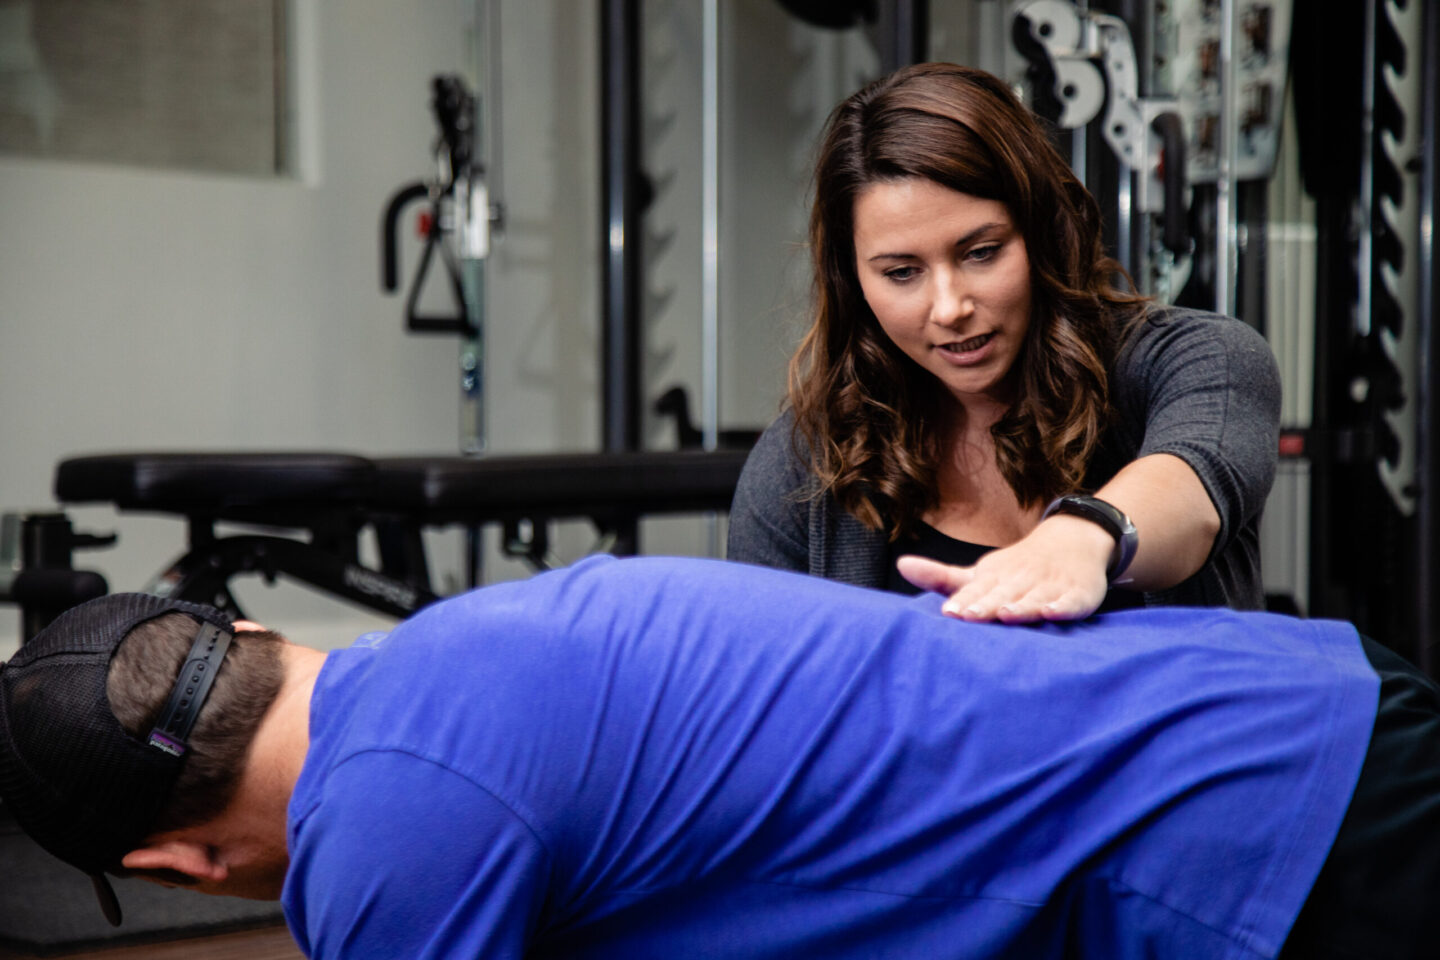 Kinesiology appointment at North 49 gym